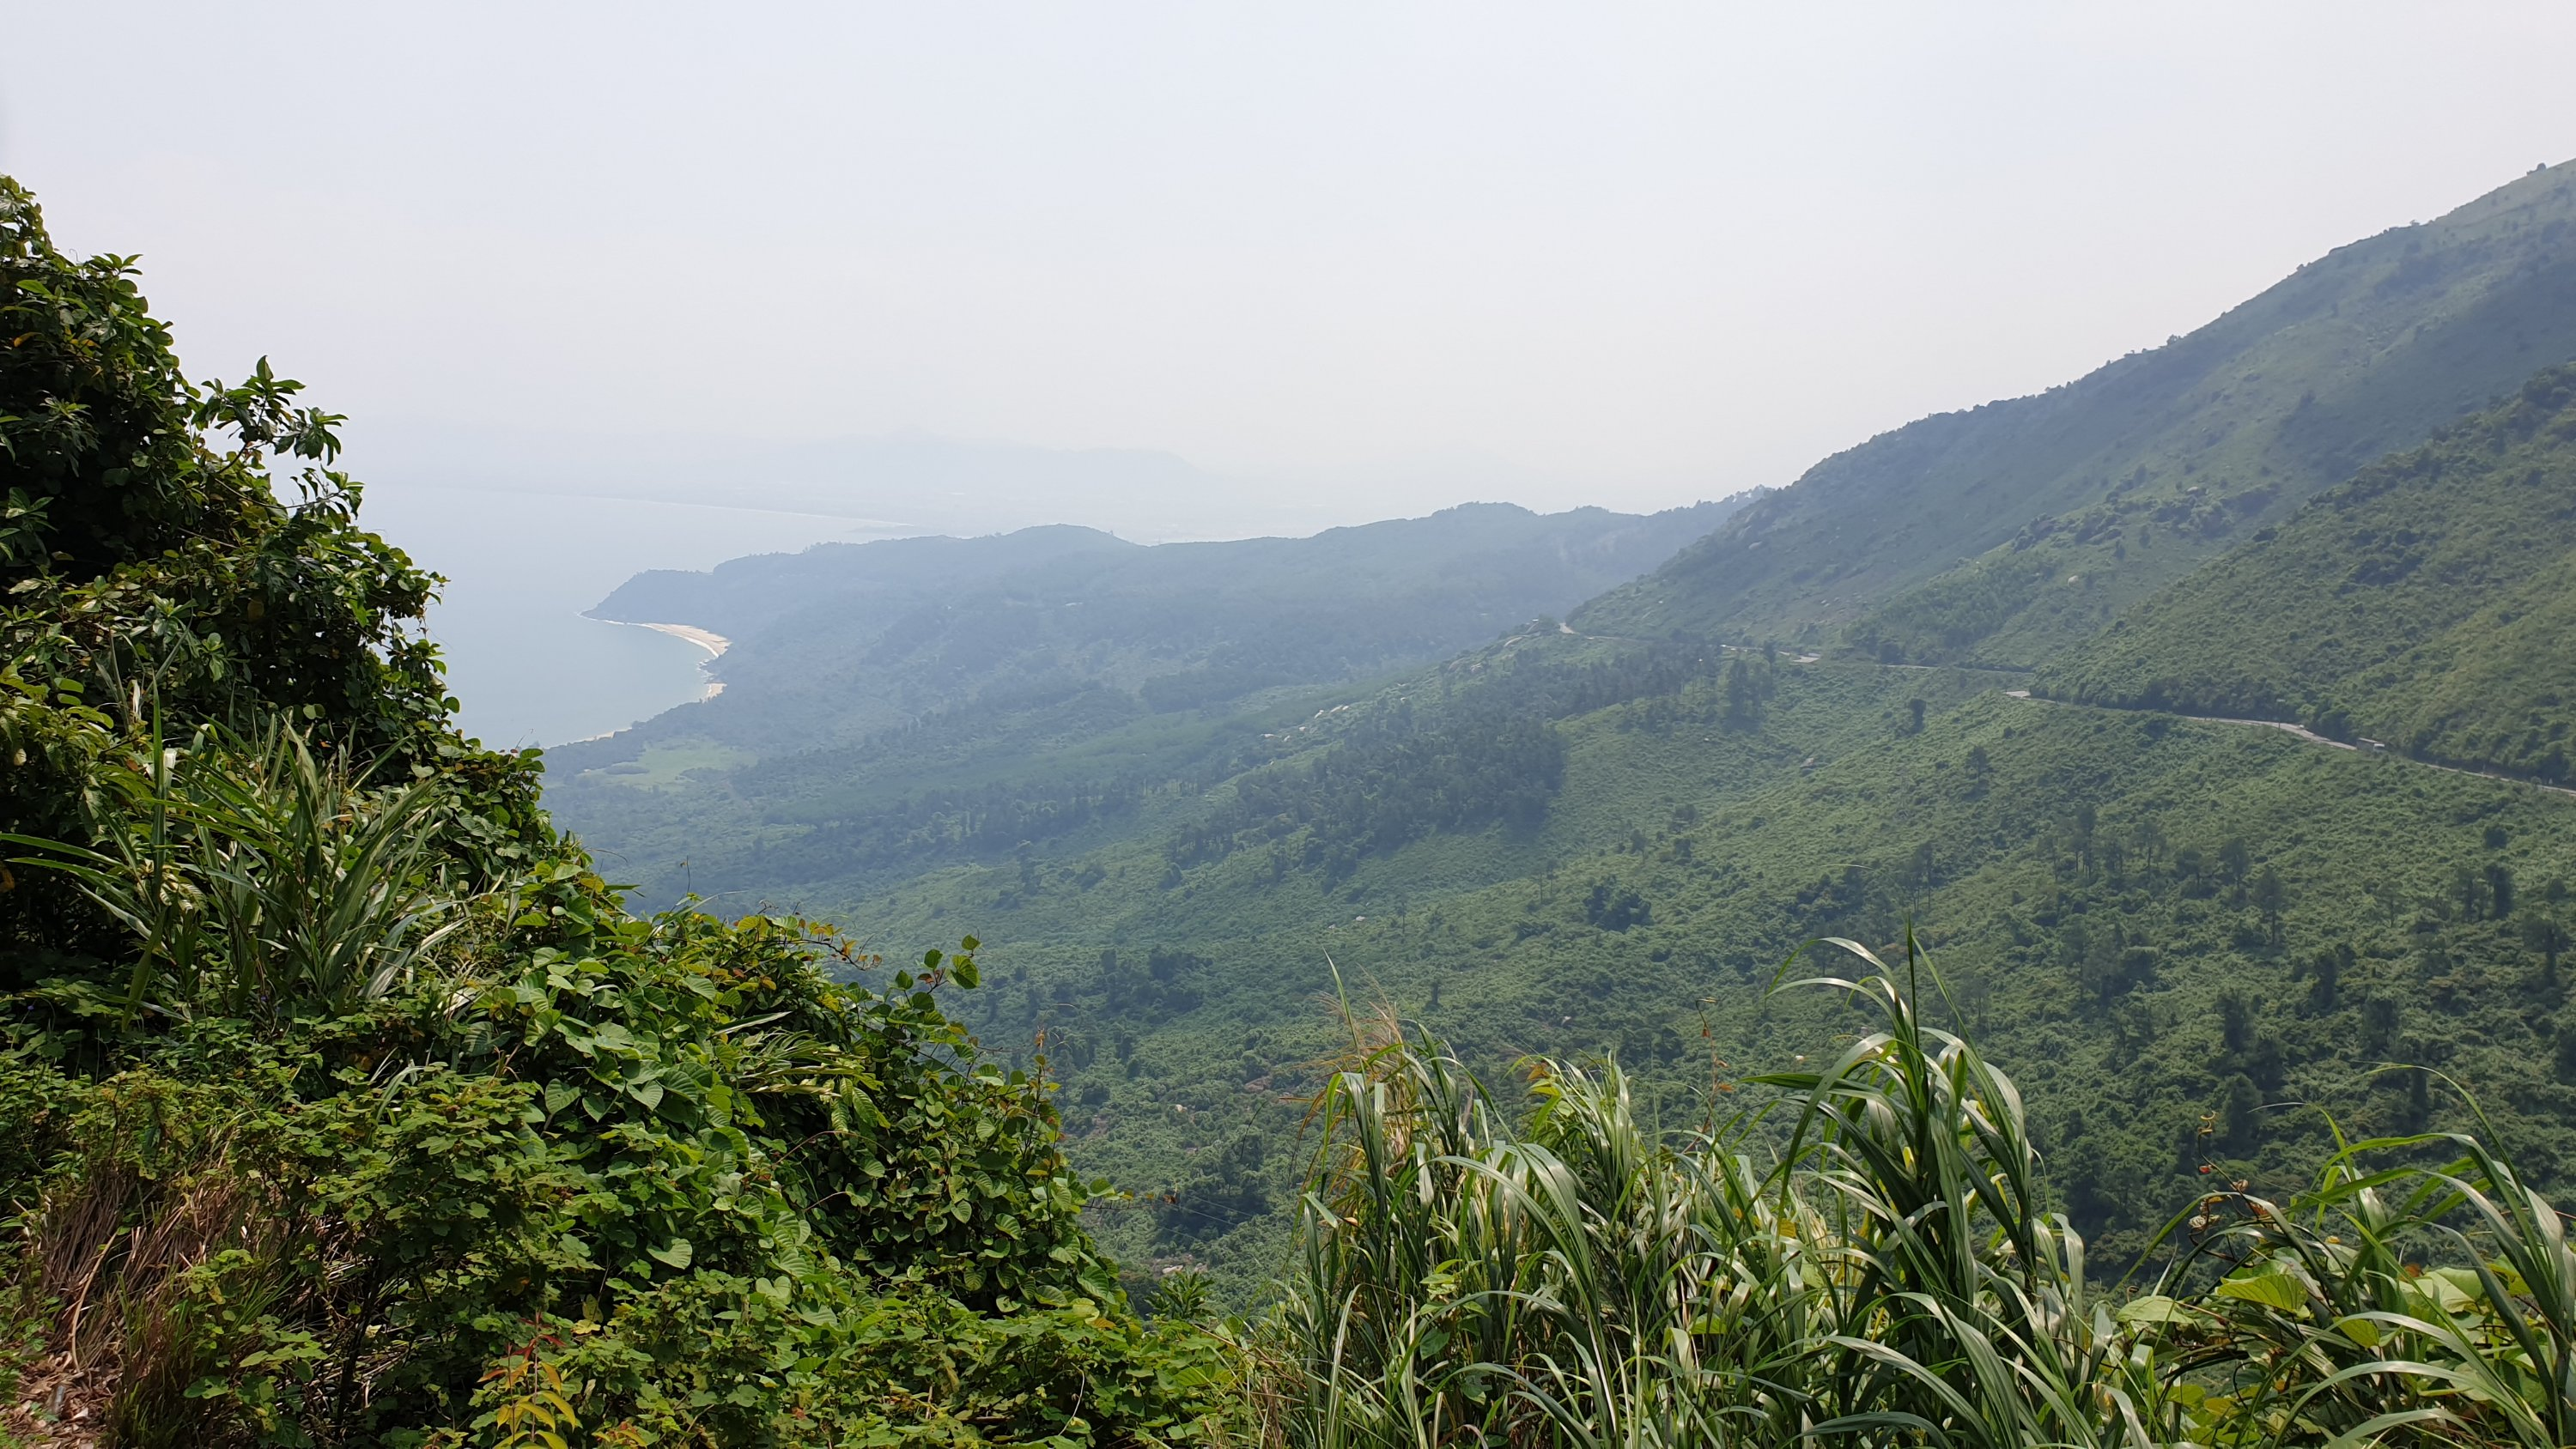 Hai Van Pass view from the mountains down onto sloping hillsides and the sea